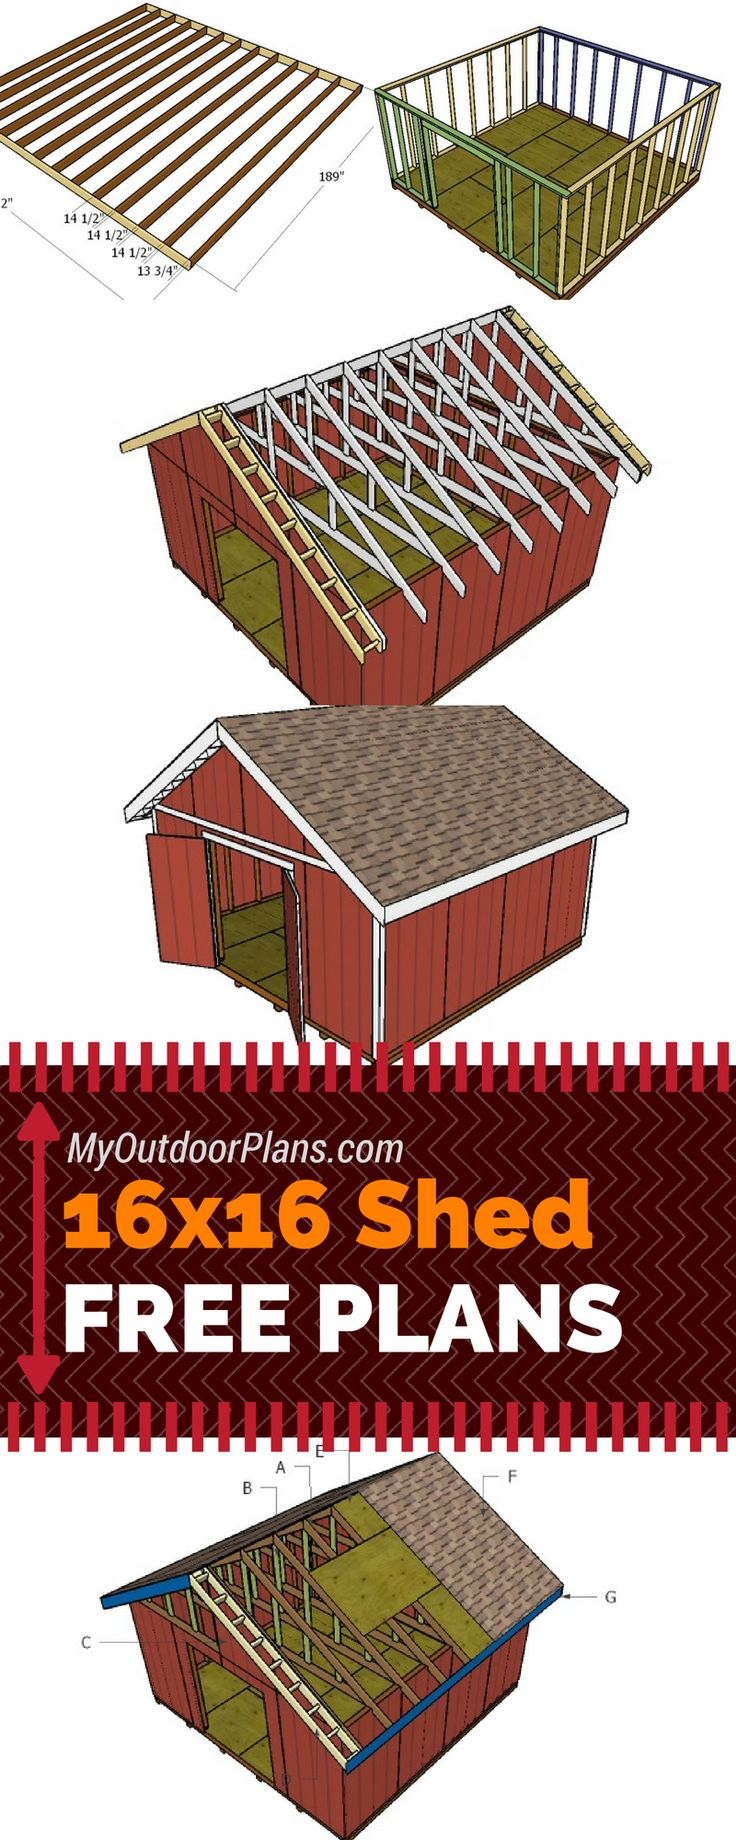 Free plans for you to learn how to build a 16x16 shed with a gable roof